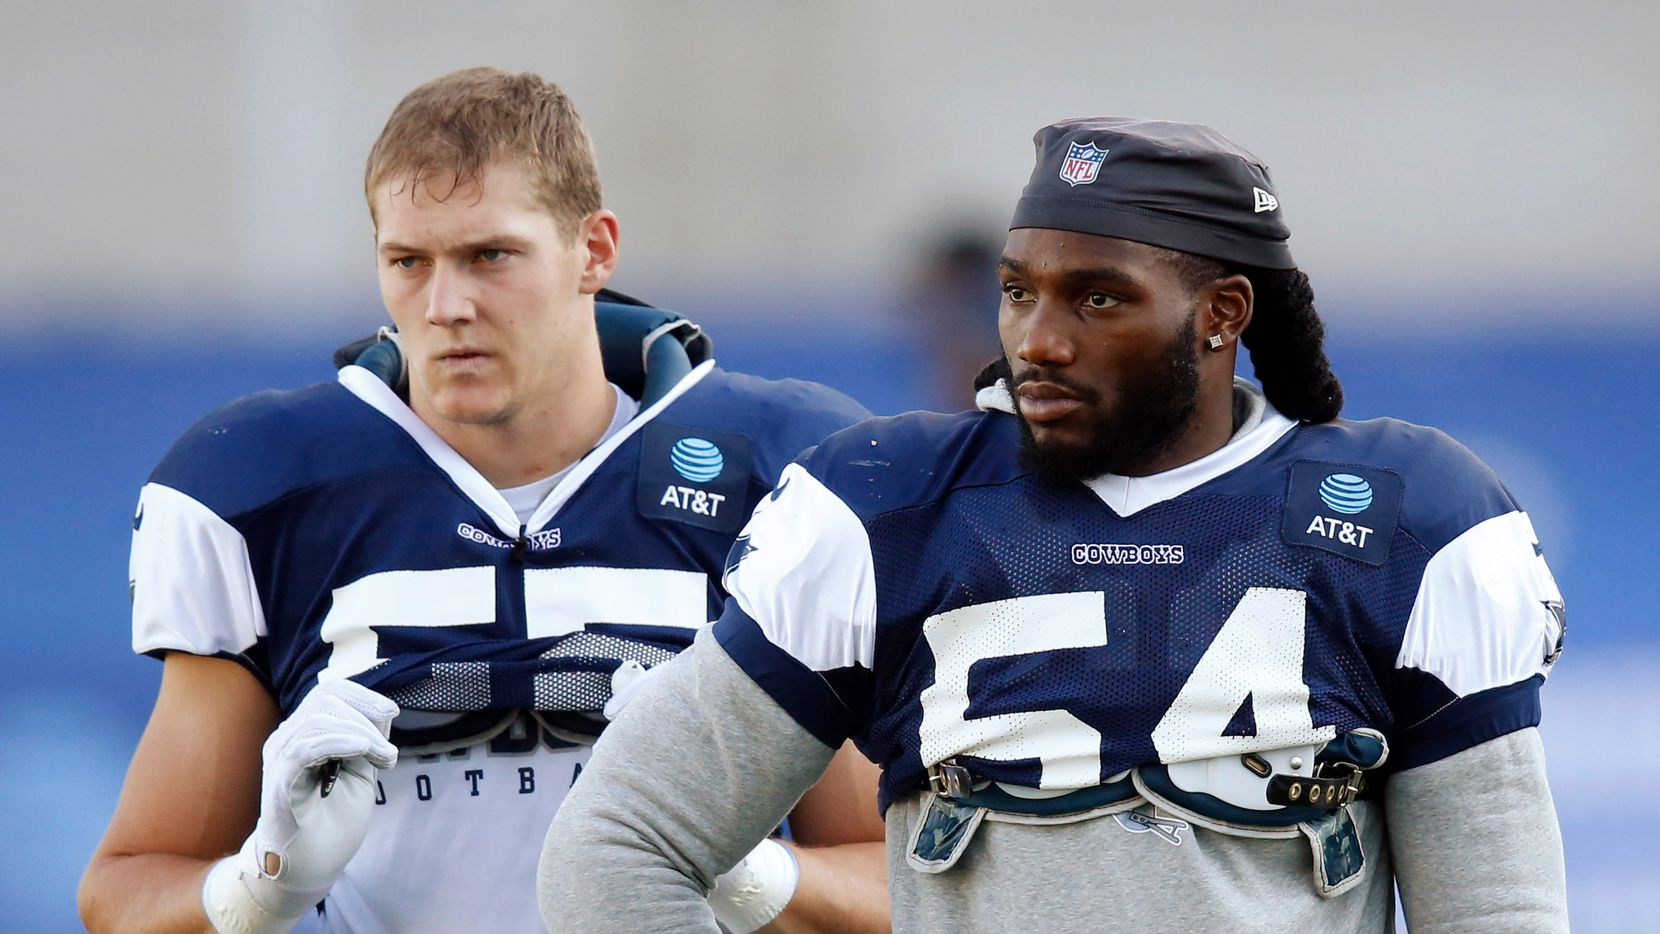 Dallas Cowboys linebacker Jaylon Smith (54) and Dallas Cowboys linebacker Leighton Vander Esch (55) during training camp at the Dallas Cowboys headquarters at The Star in Frisco, Texas on Thursday, August 20, 2020.